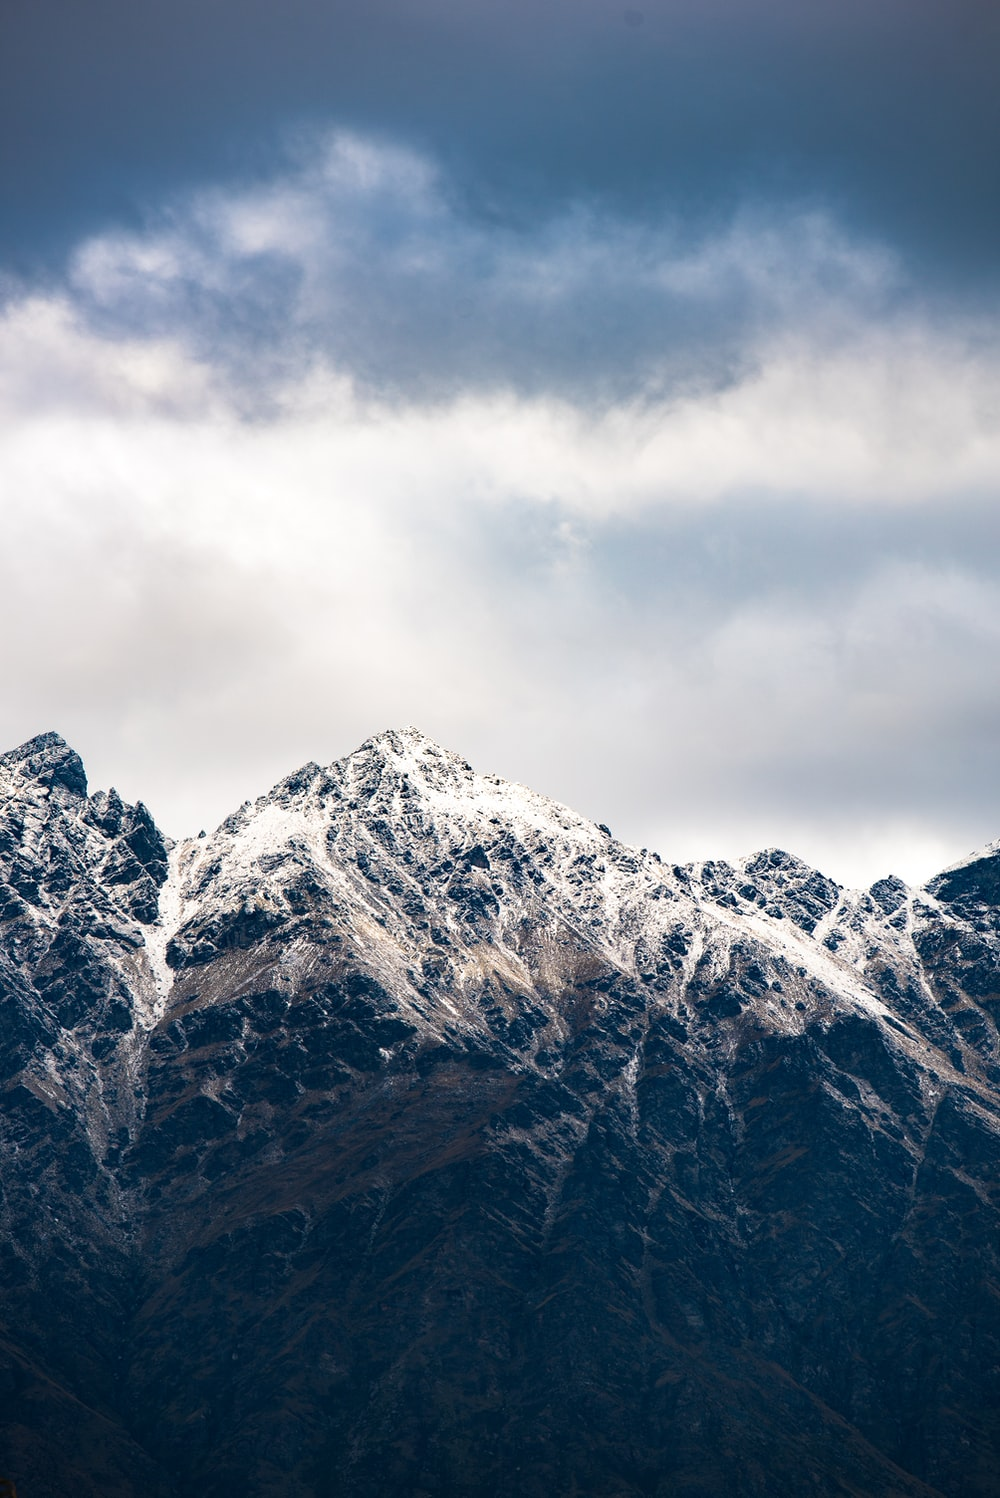 snow-capped mountain below cloudy sky